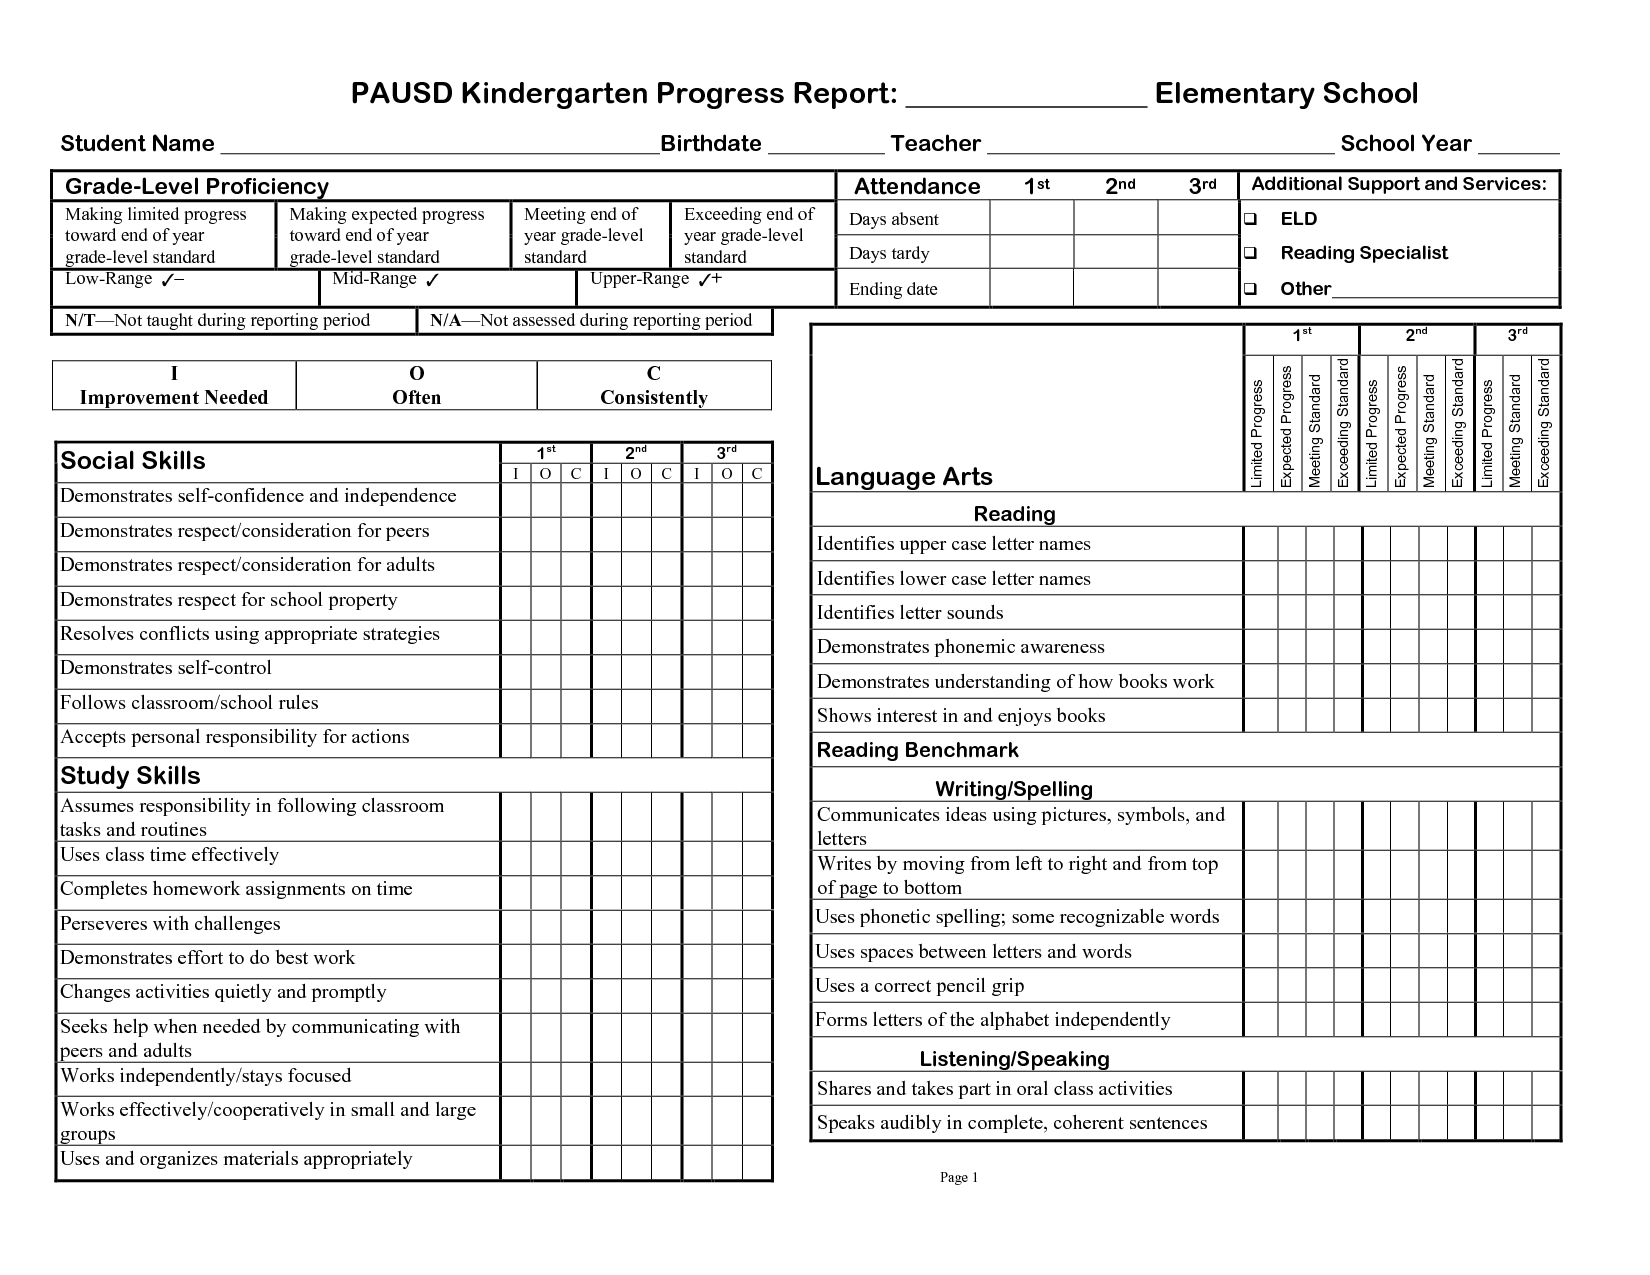 3rd gradeprogress report template pausd kindergarten for First grade progress report template